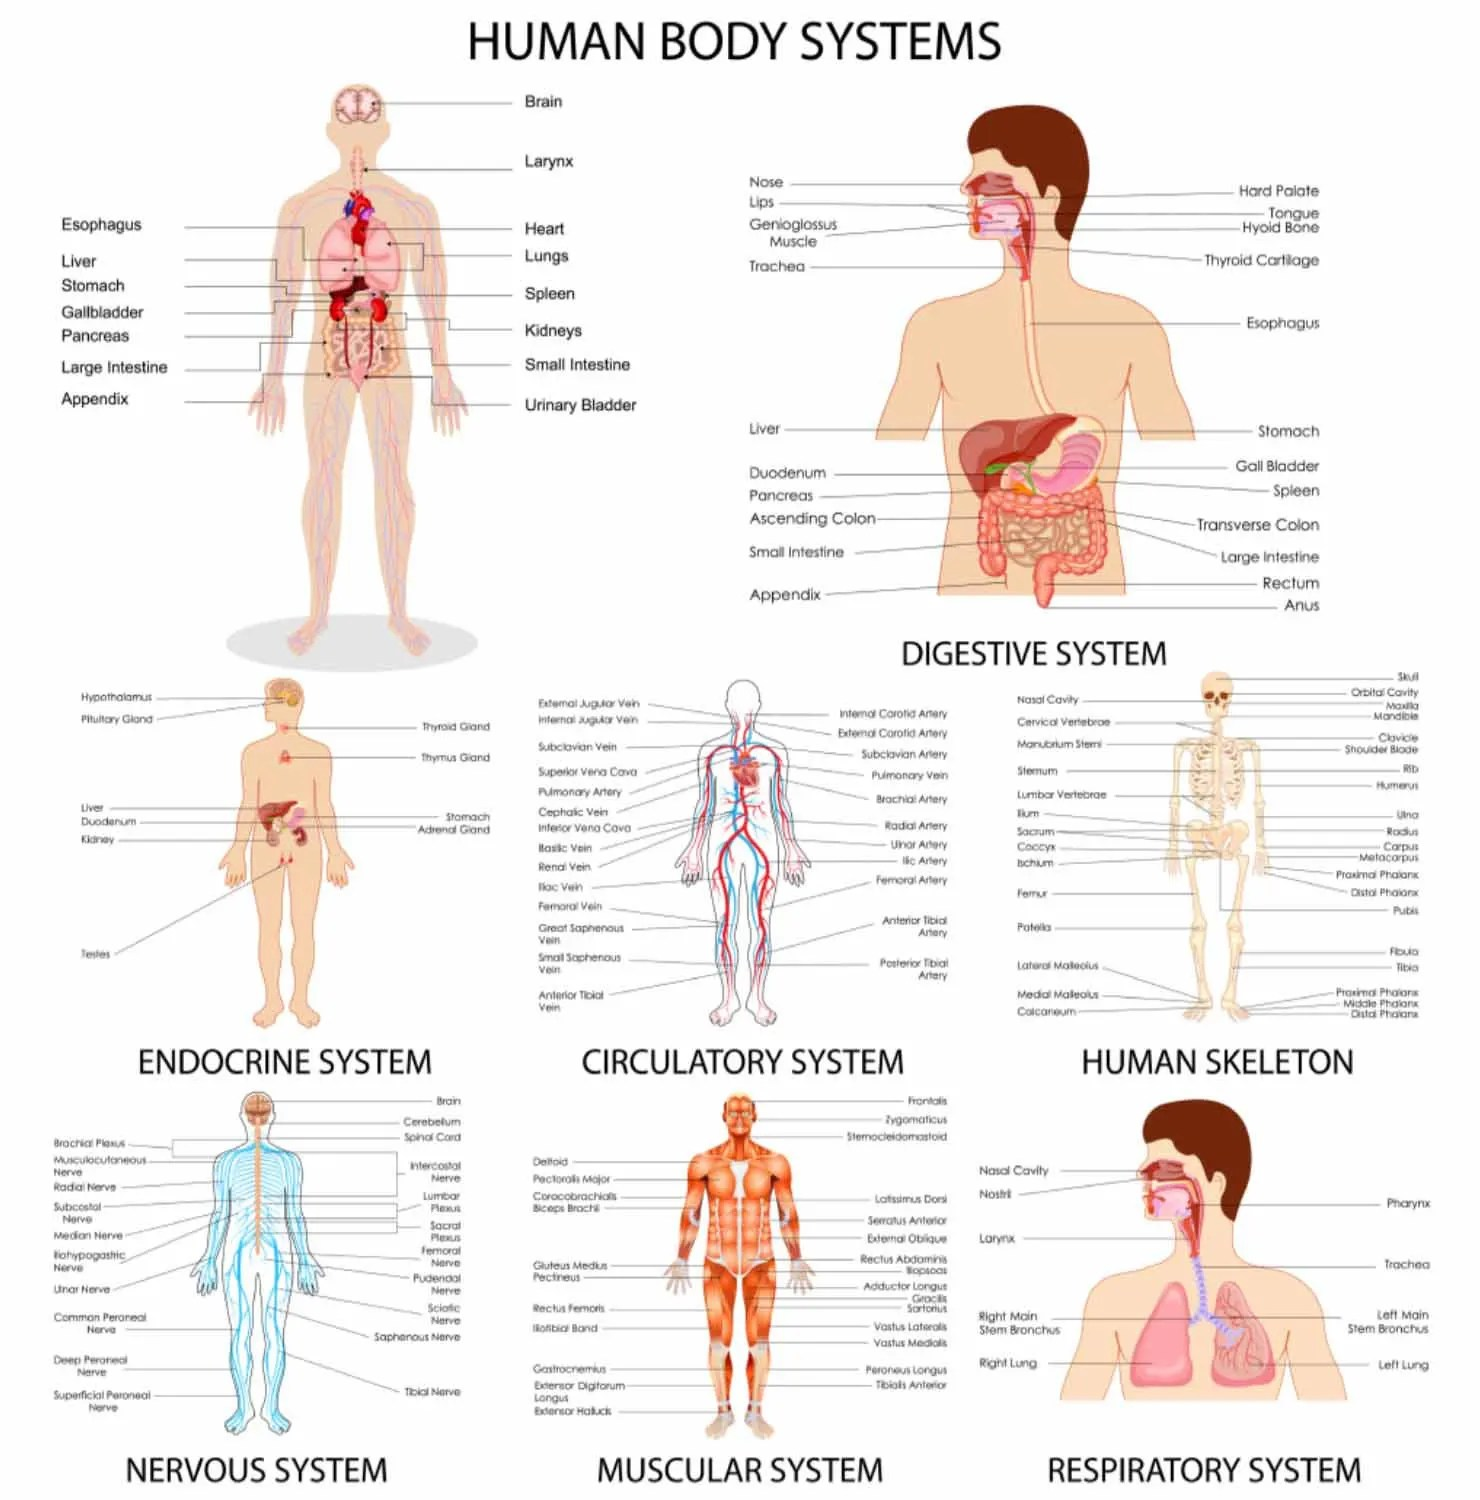 Human Body Systems Print Human Body Systems Poster Body